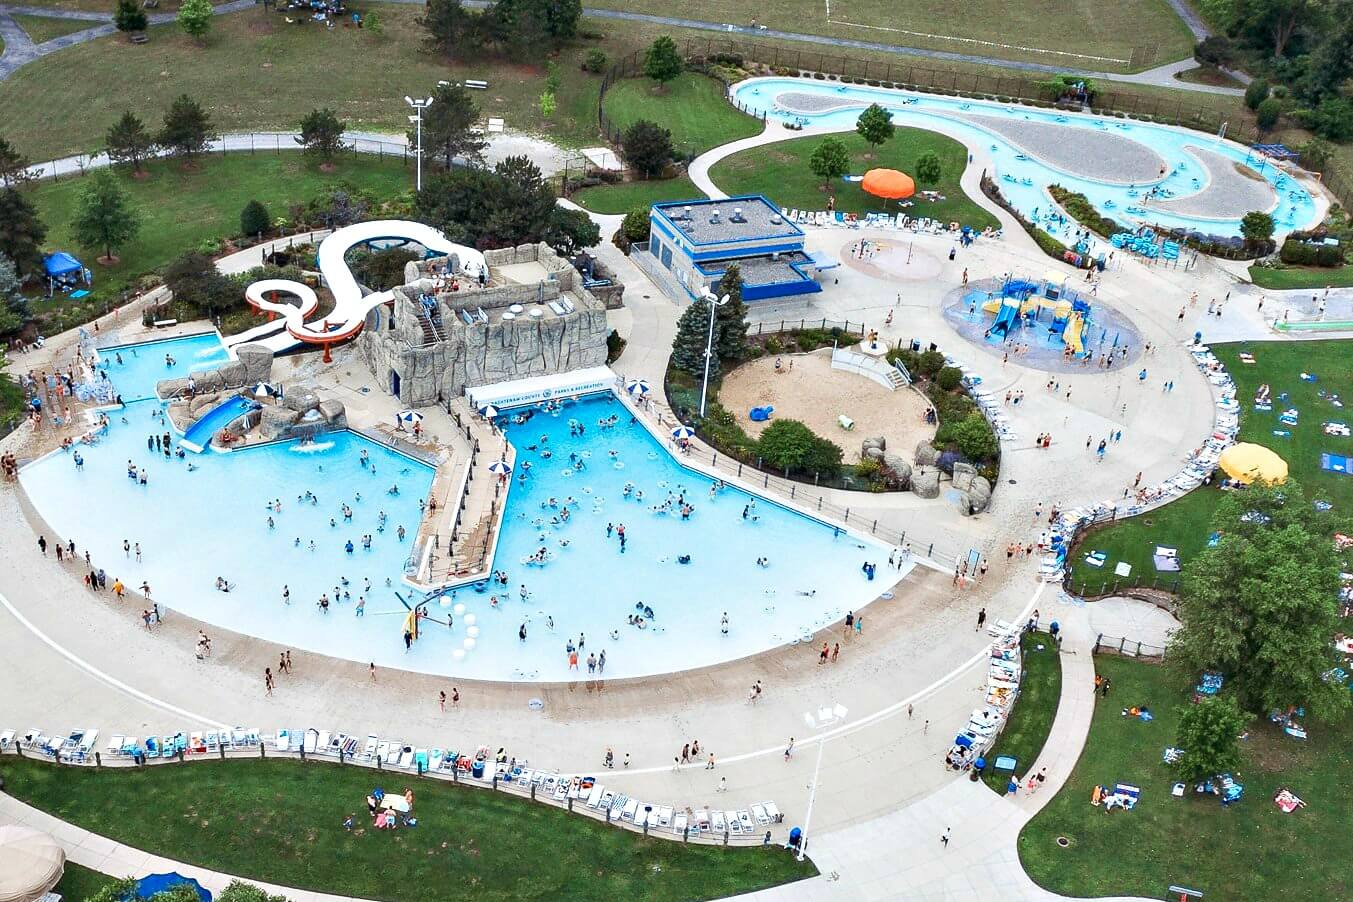 TOP 5 WATERPARKS IN METRO DETROIT